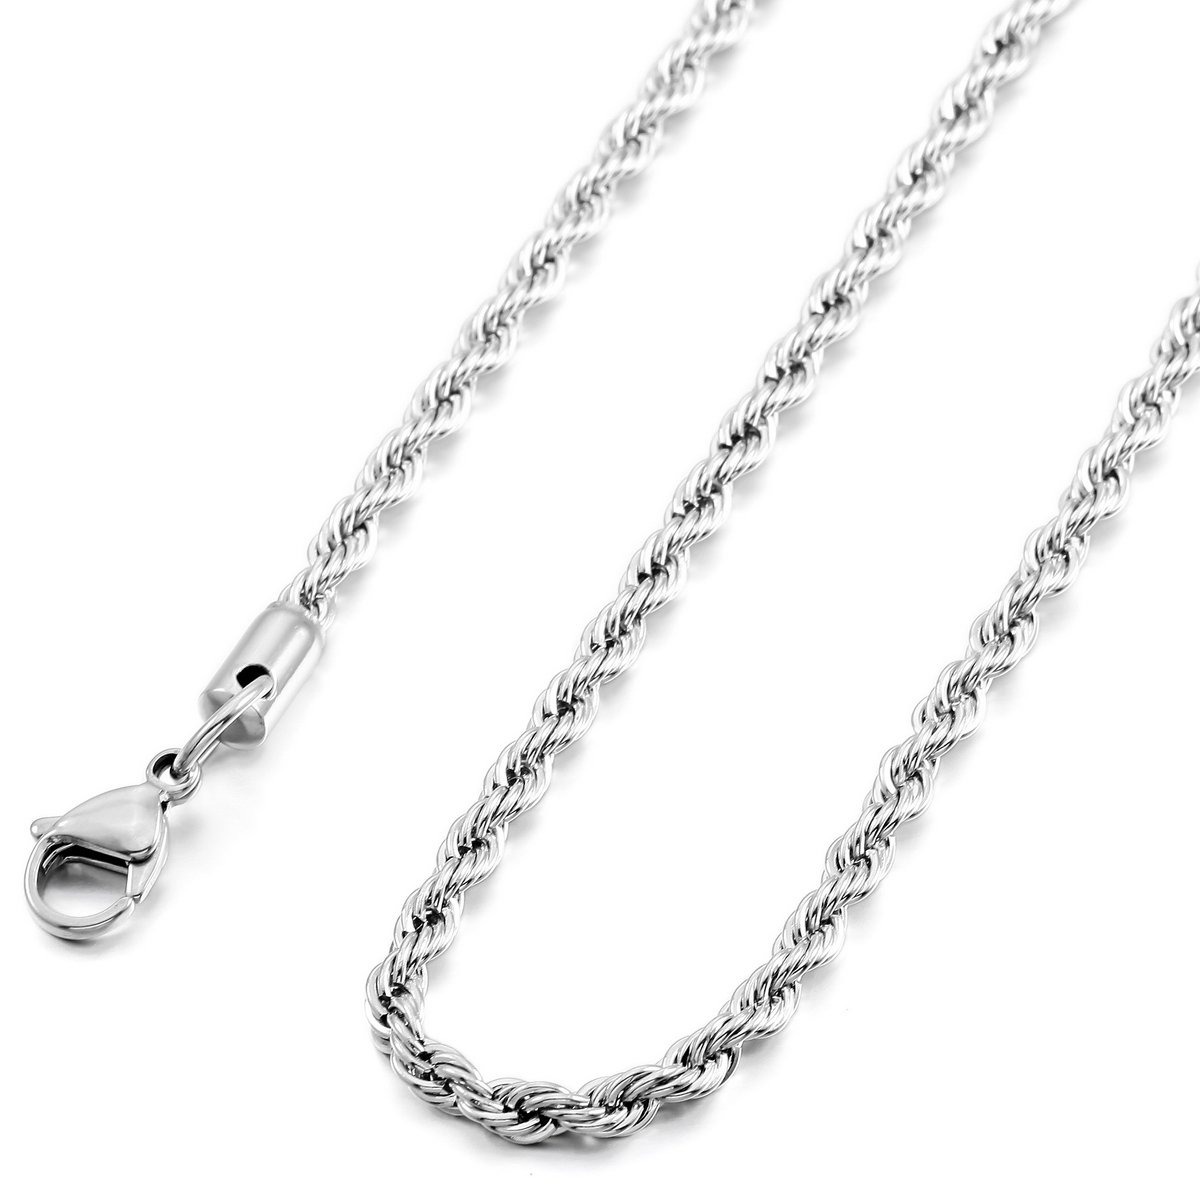 MOWOM Silver Tone 4.0mm Wide Stainless Steel Necklace Rope Chain Link 14~40 Inch ca5070004-4.0-14